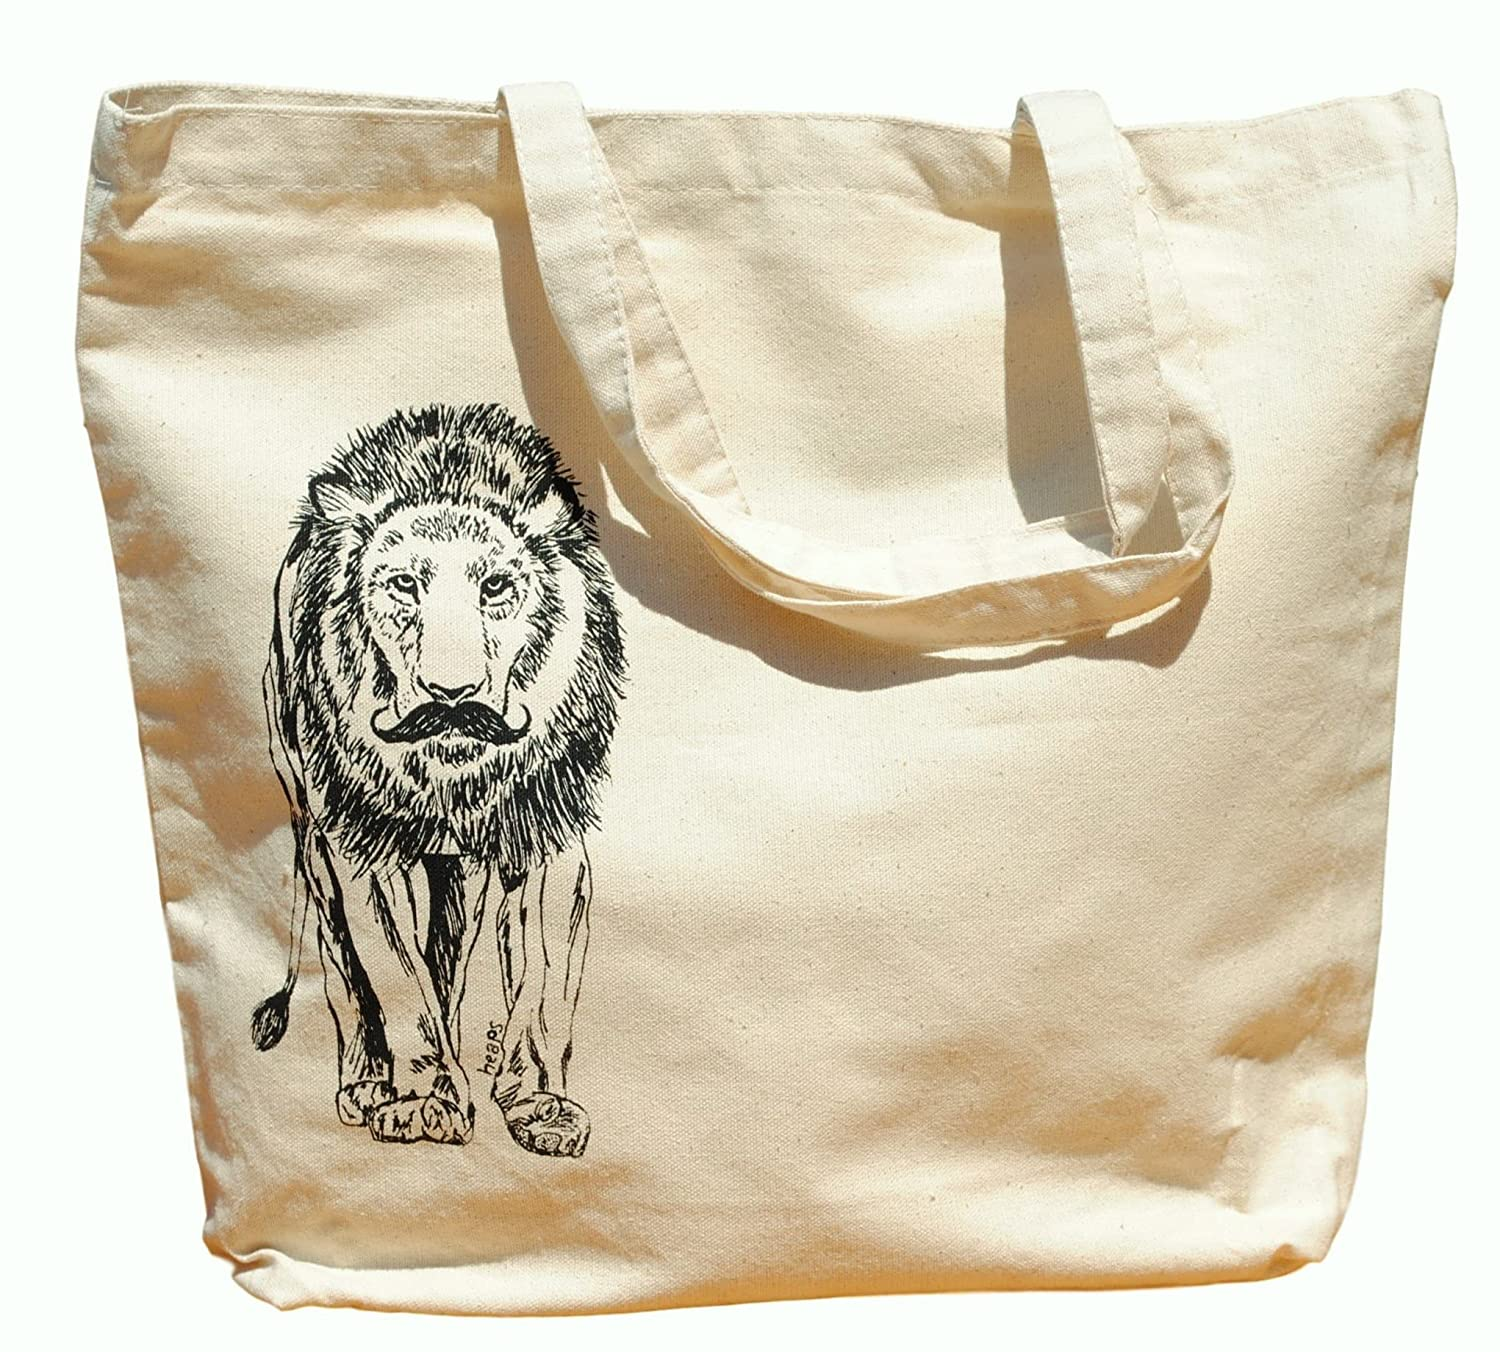 Canvas Tote Bag - Hand Printed Lion with a Mustache - Market Travel Beach Shopper Grocery School